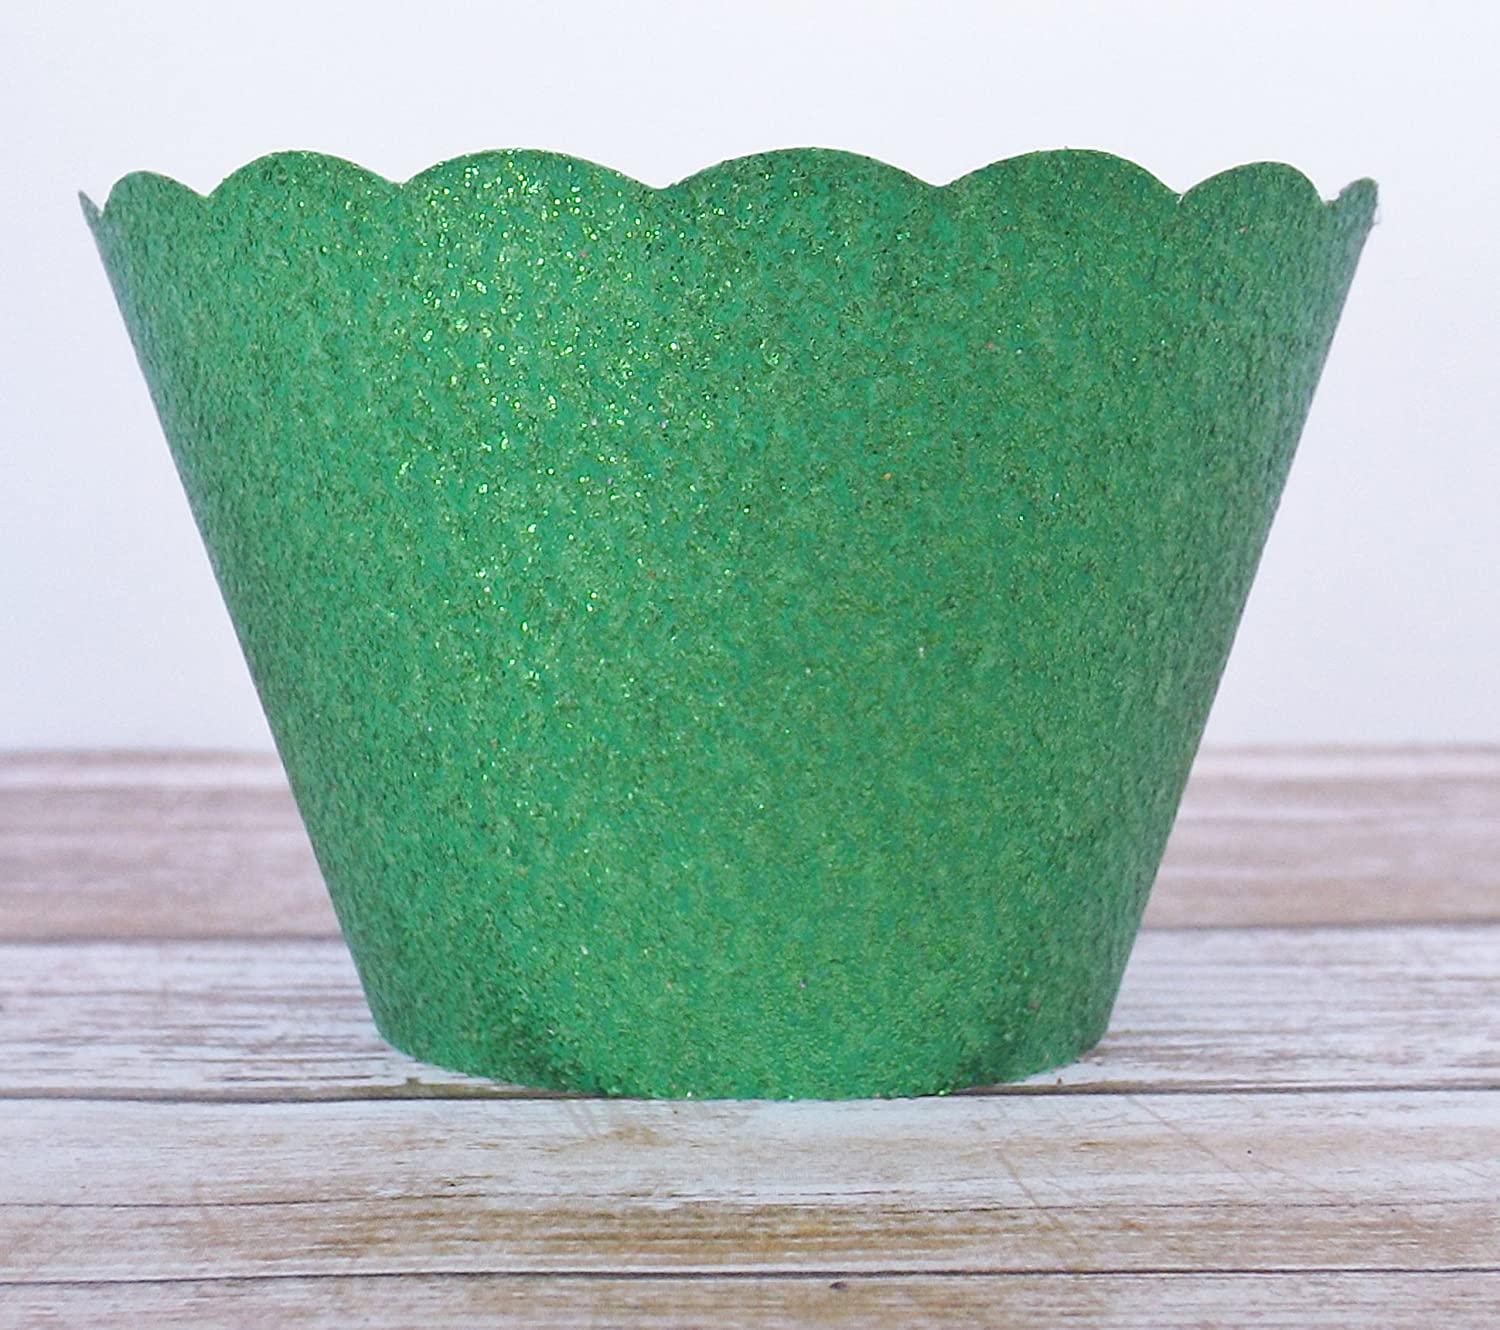 Standard and Mini Sized Holders Green Metallic Glitter Cupcake Wrappers Set of 12